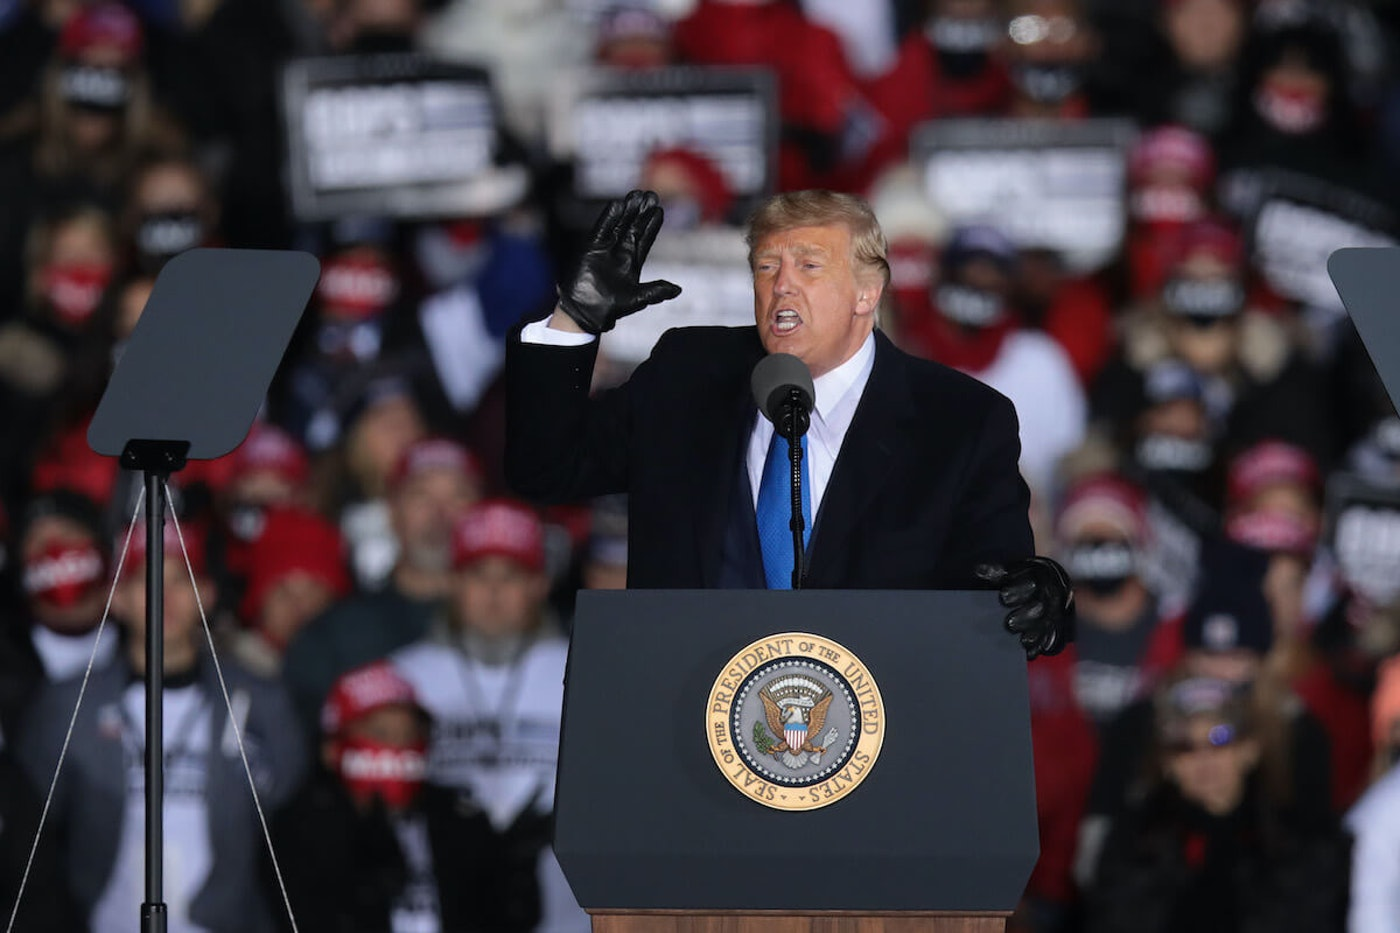 President Donald Trump speaks to supporters during a campaign rally at the Waukesha County Airport Oct. 27. During the rally, he continued to  spread a lie that the medical field is overreporting and financially benefiting from COVID-19 deaths. Neither claim is true.(Photo by Scott Olson/Getty Images)